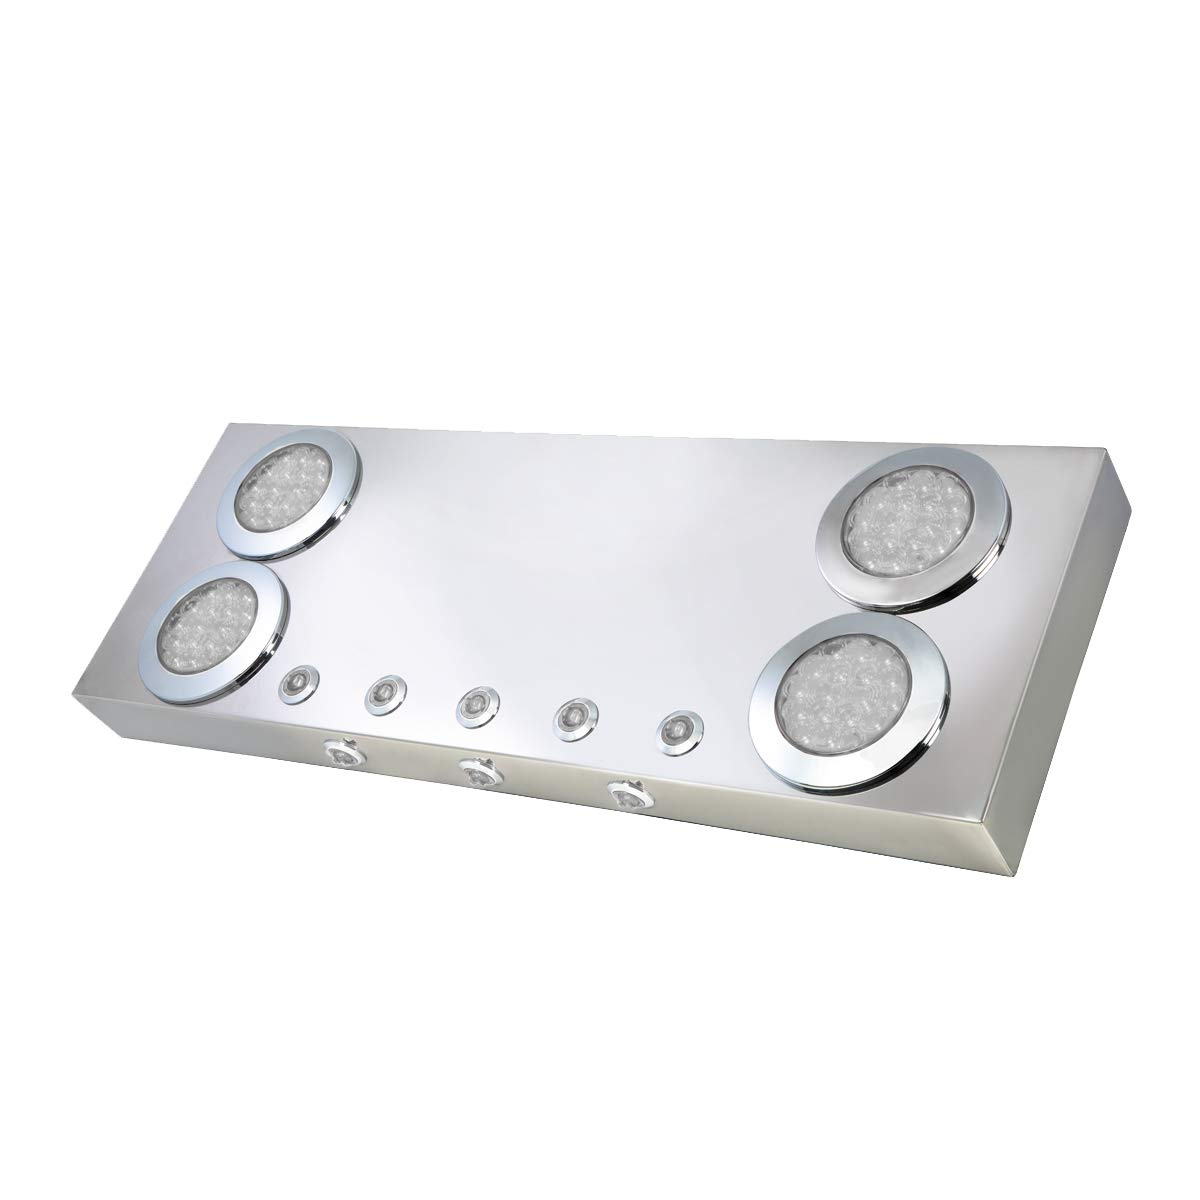 GG Grand General 91310 Stainless Steel Rear Panel with 4 and 1 inches Red LED Lights